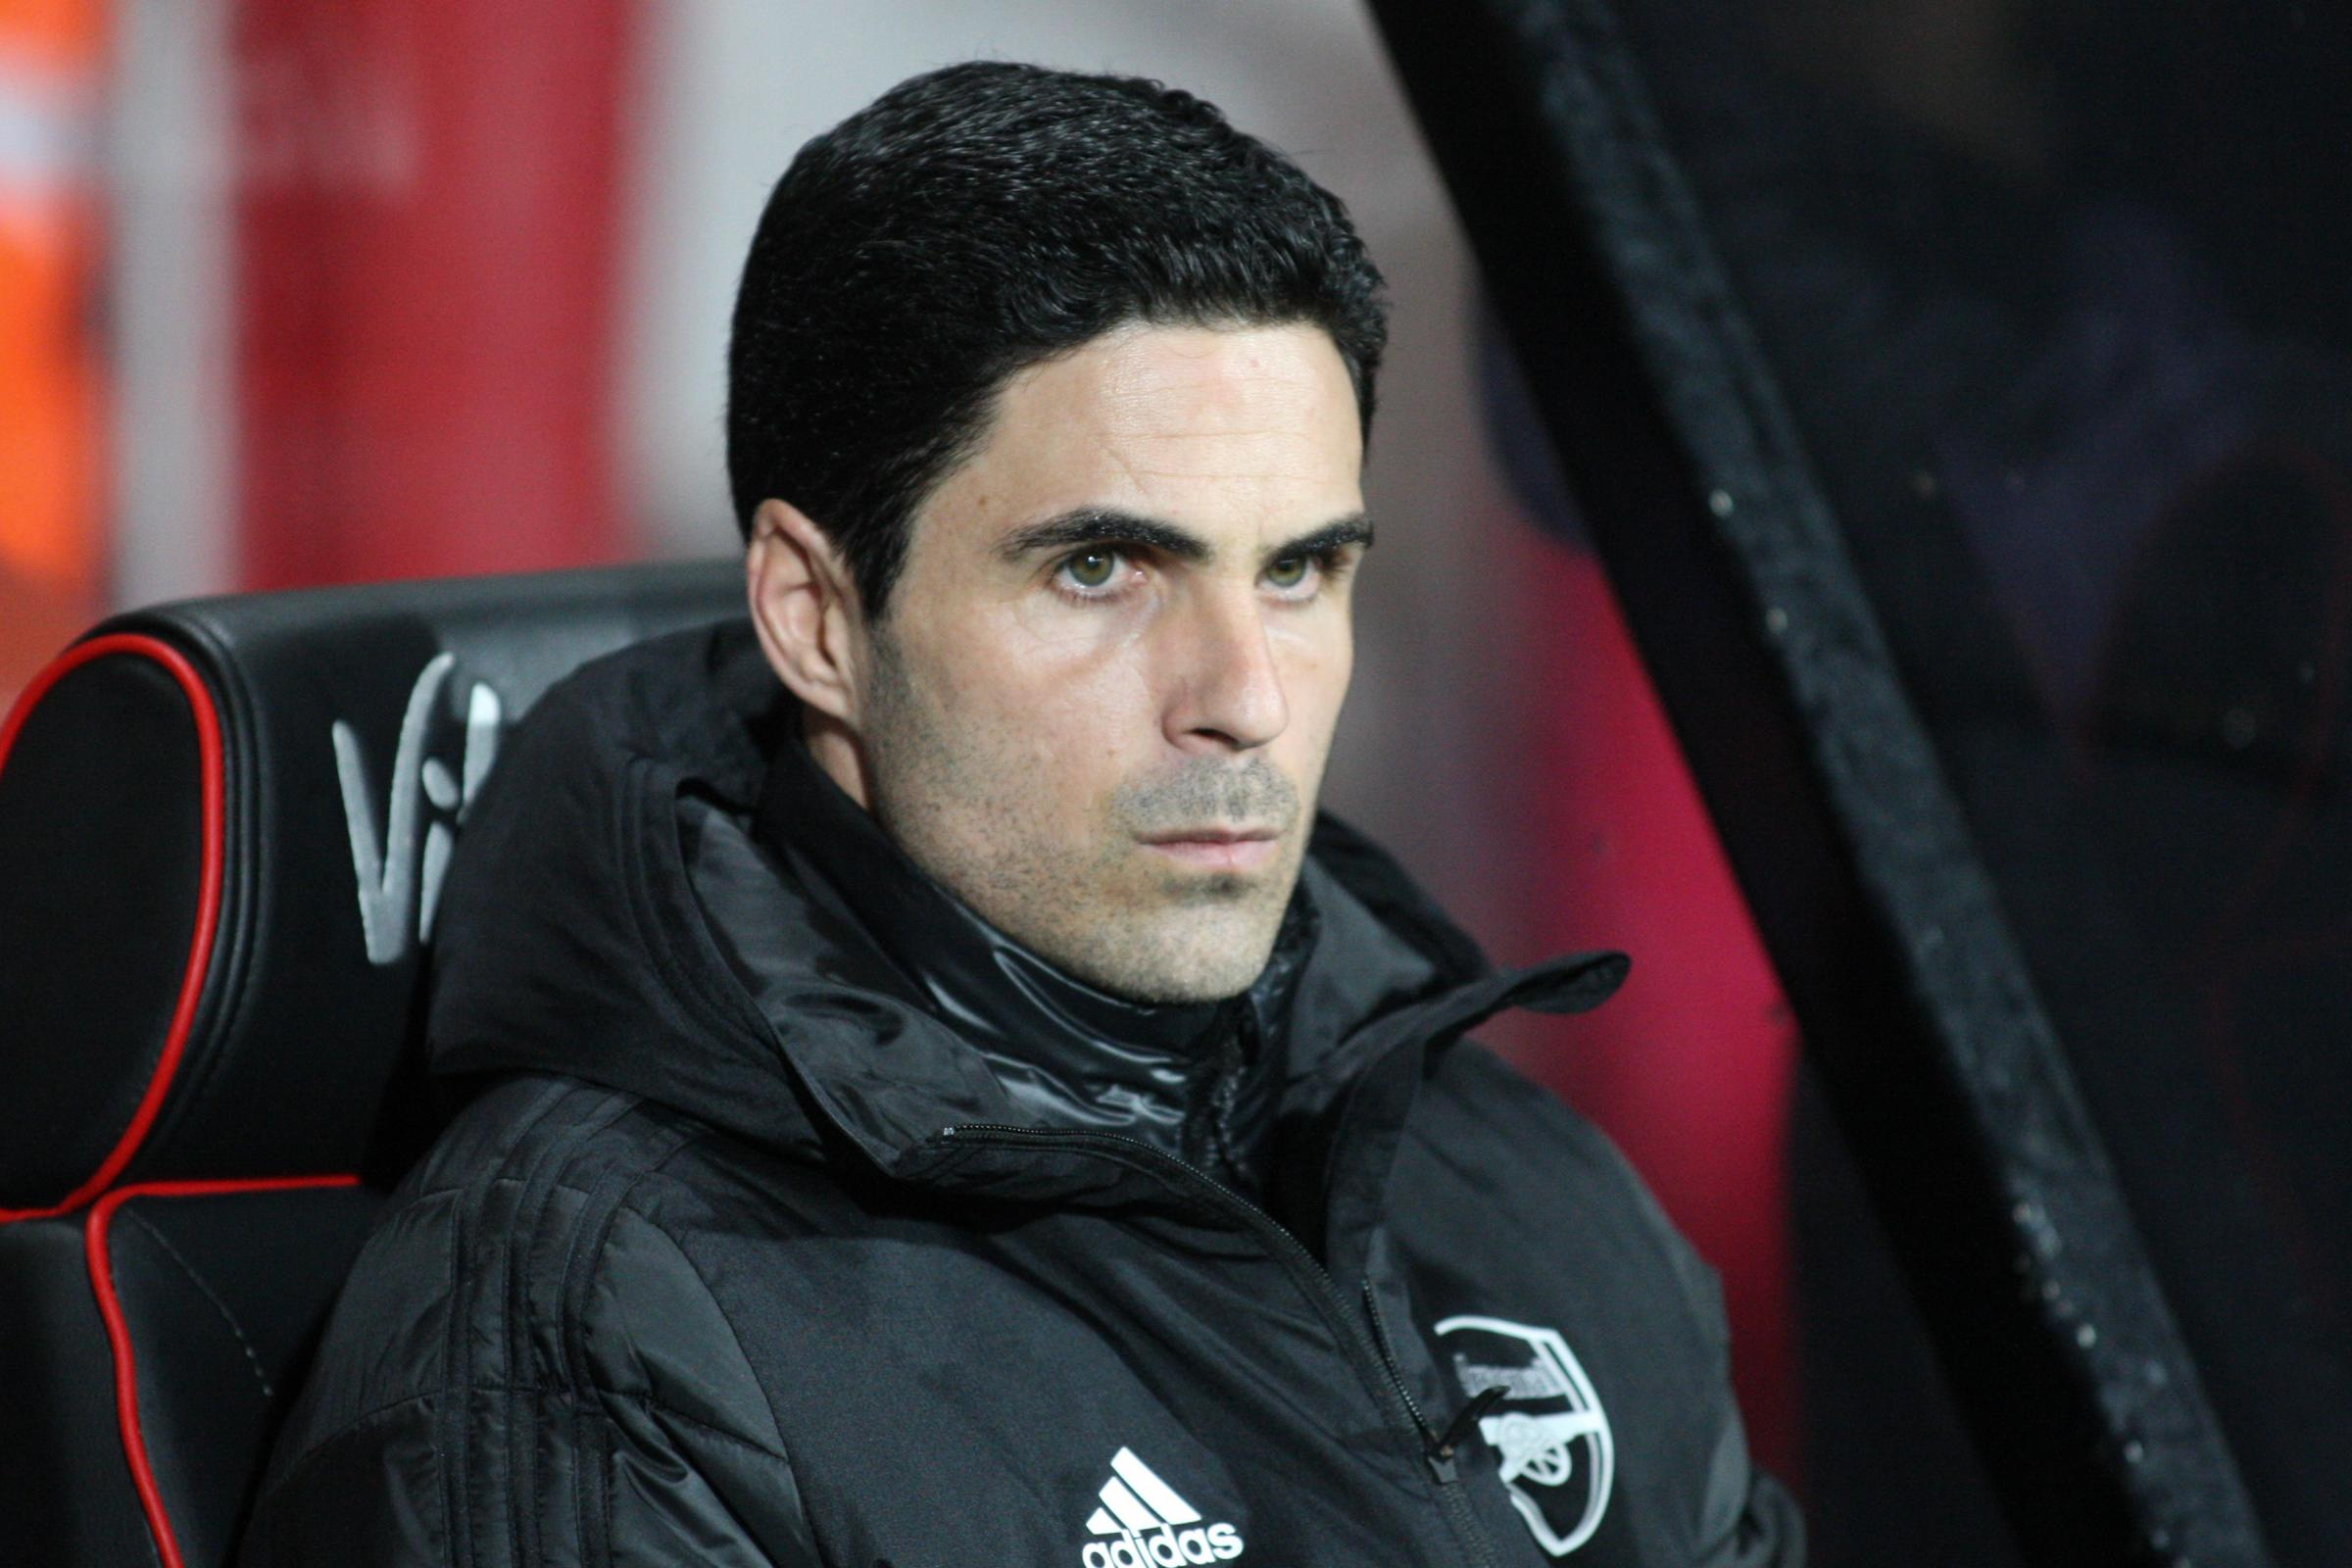 'I hope they stay up because I think they deserve it' - Arsenal boss Mikel Arteta says AFC Bournemouth have been 'unlucky' this season